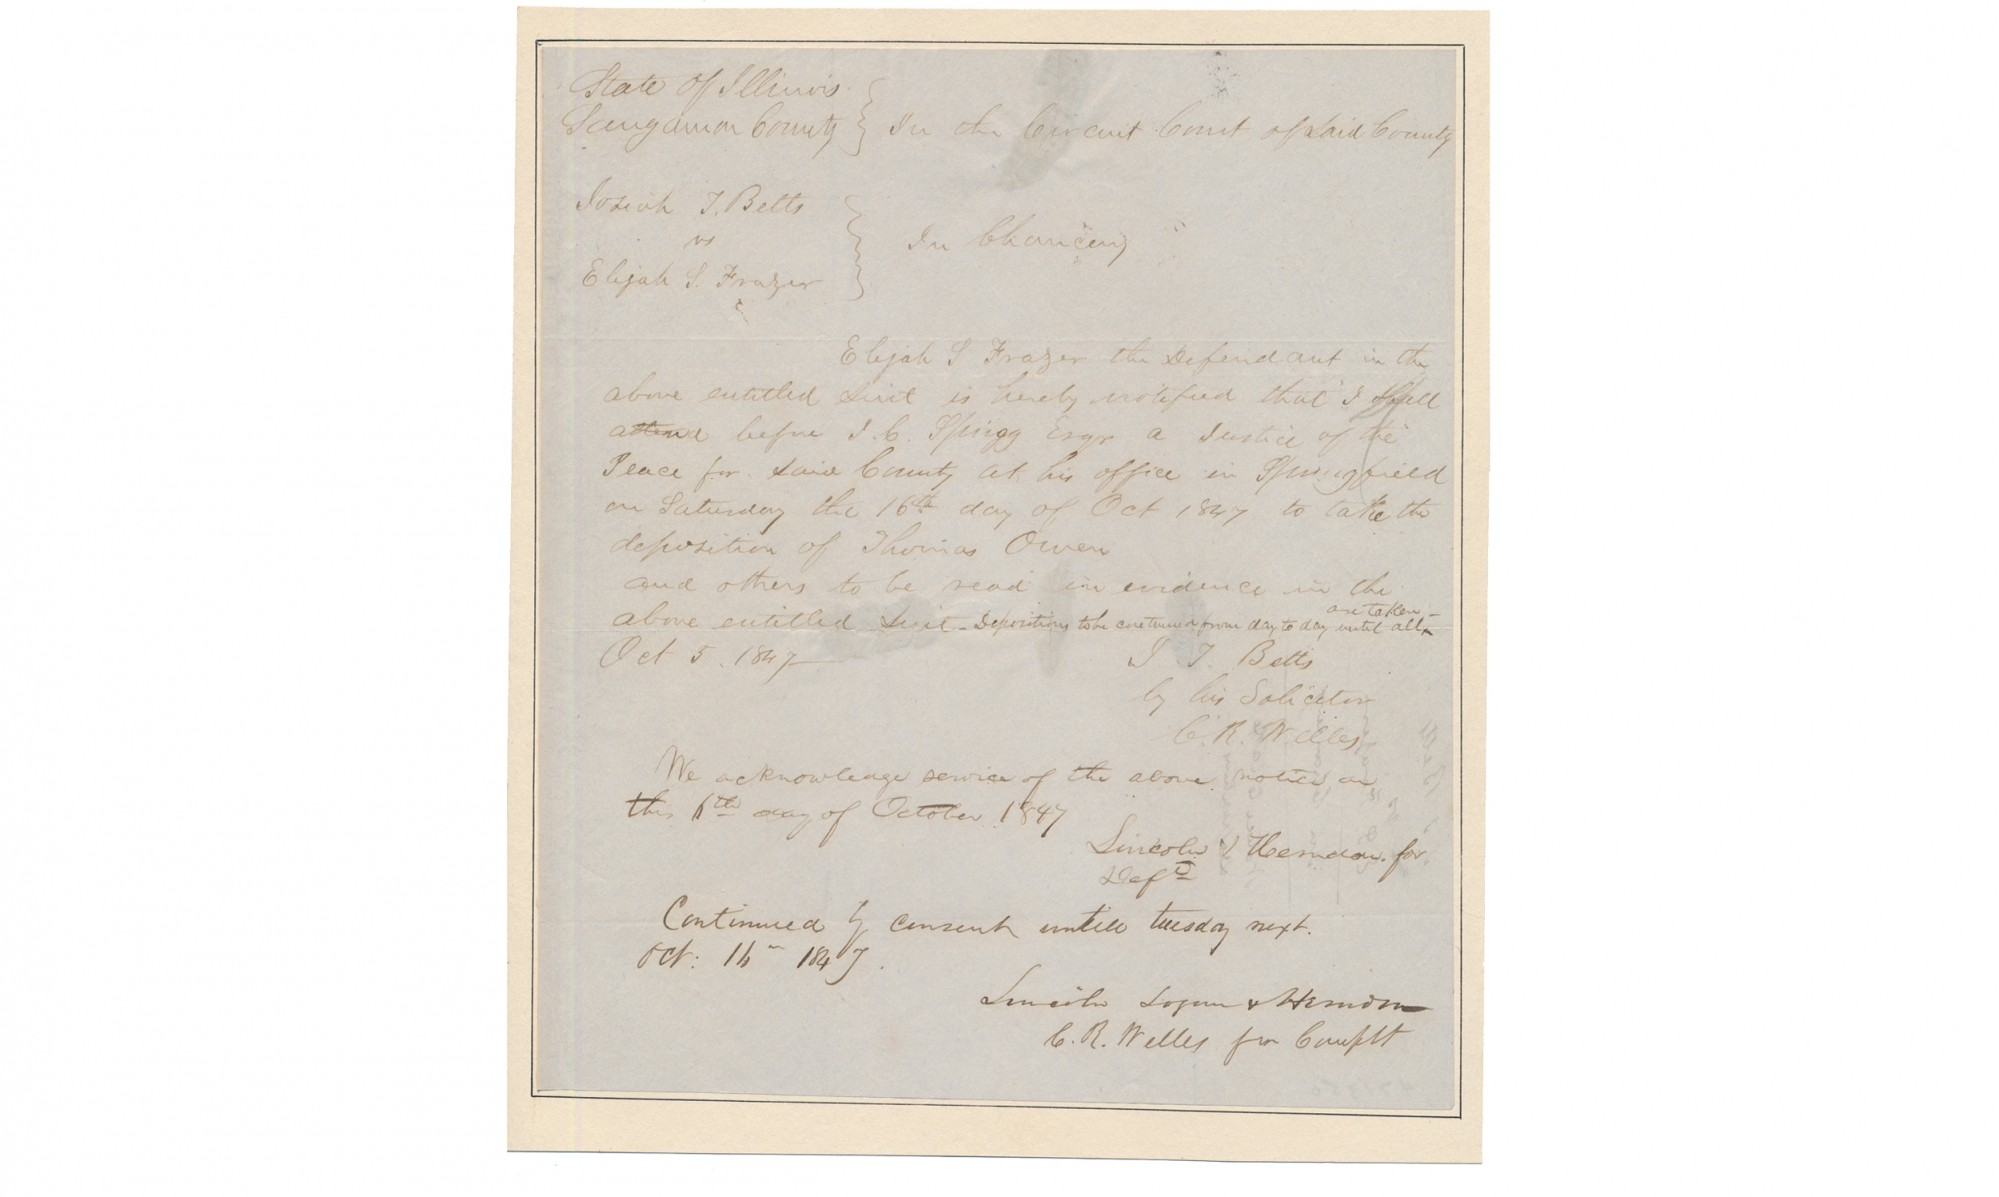 ABRAHAM LINCOLN / LINCOLN & HERNDON LEGAL DOCUMENT, WITH FIRM NAME